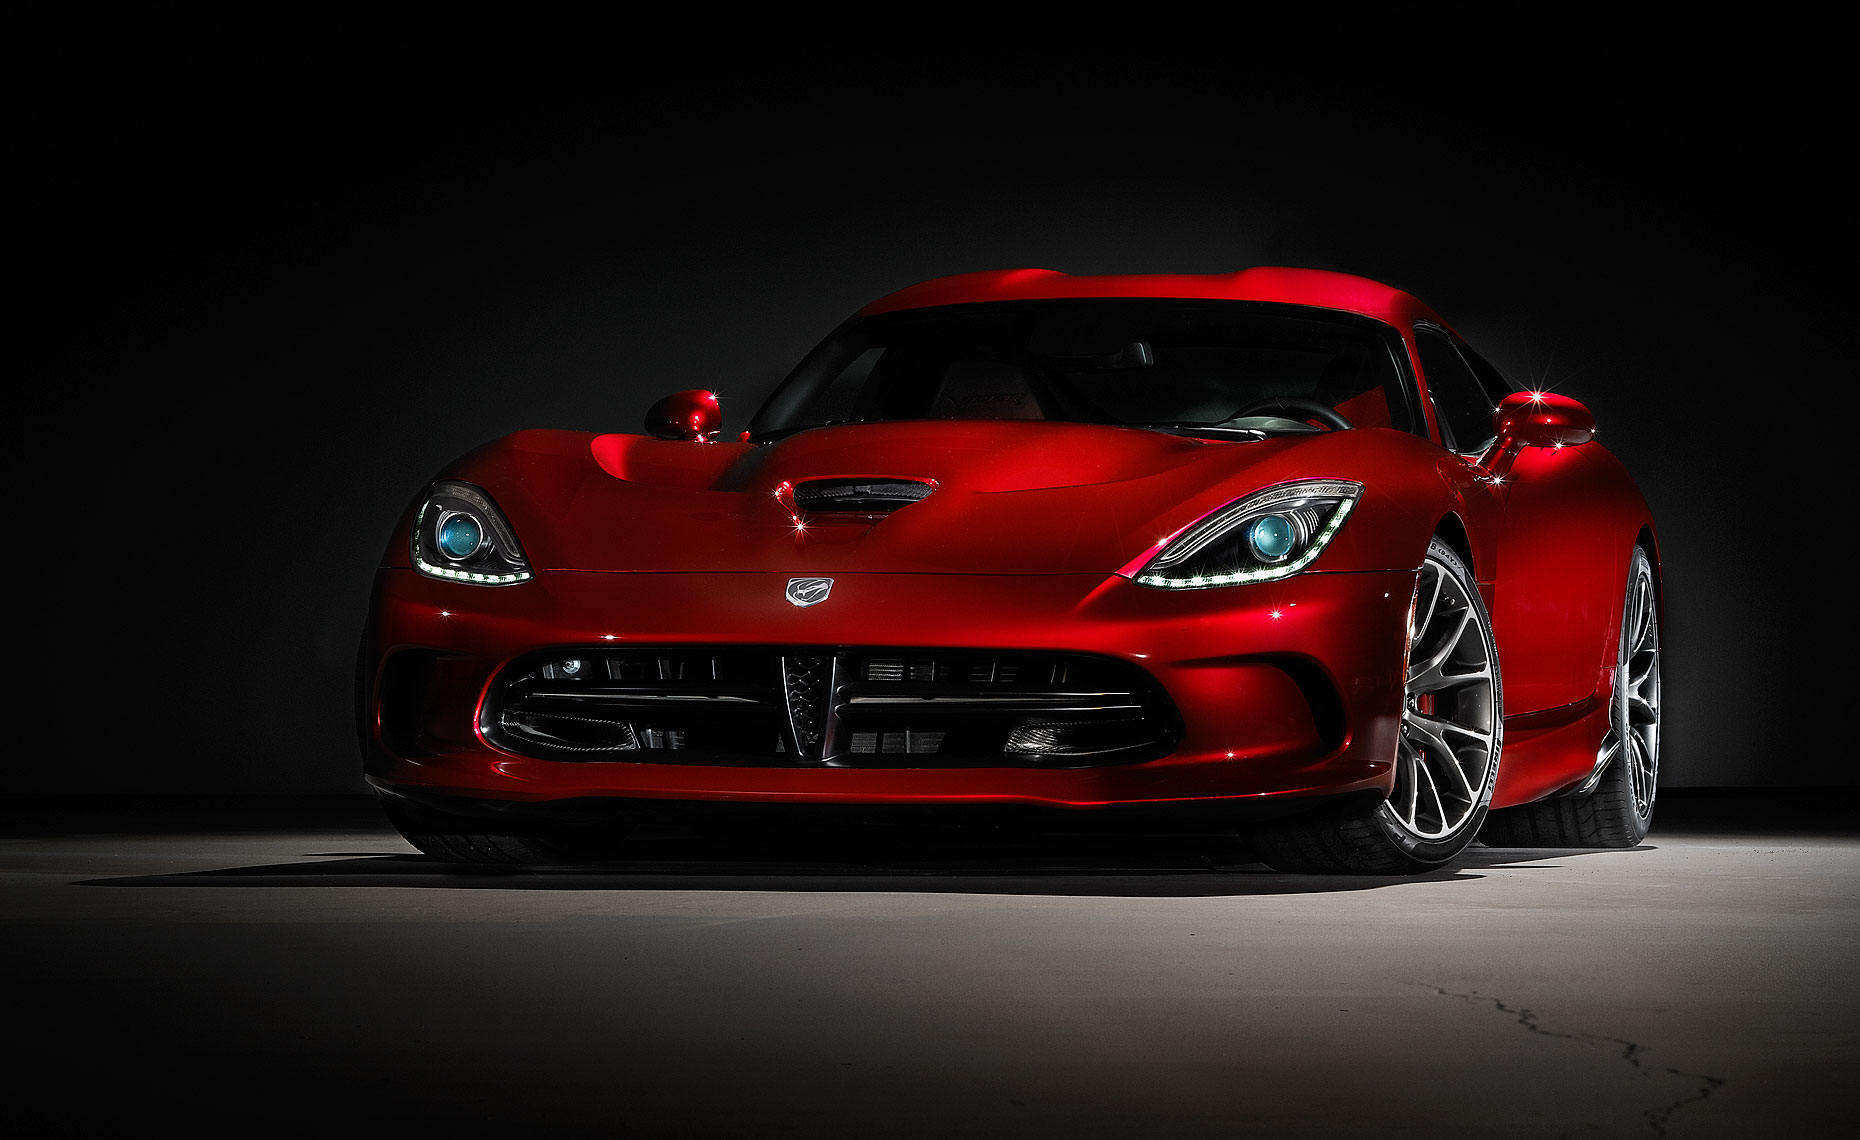 2013 viper srt-cover shot red car.jpg